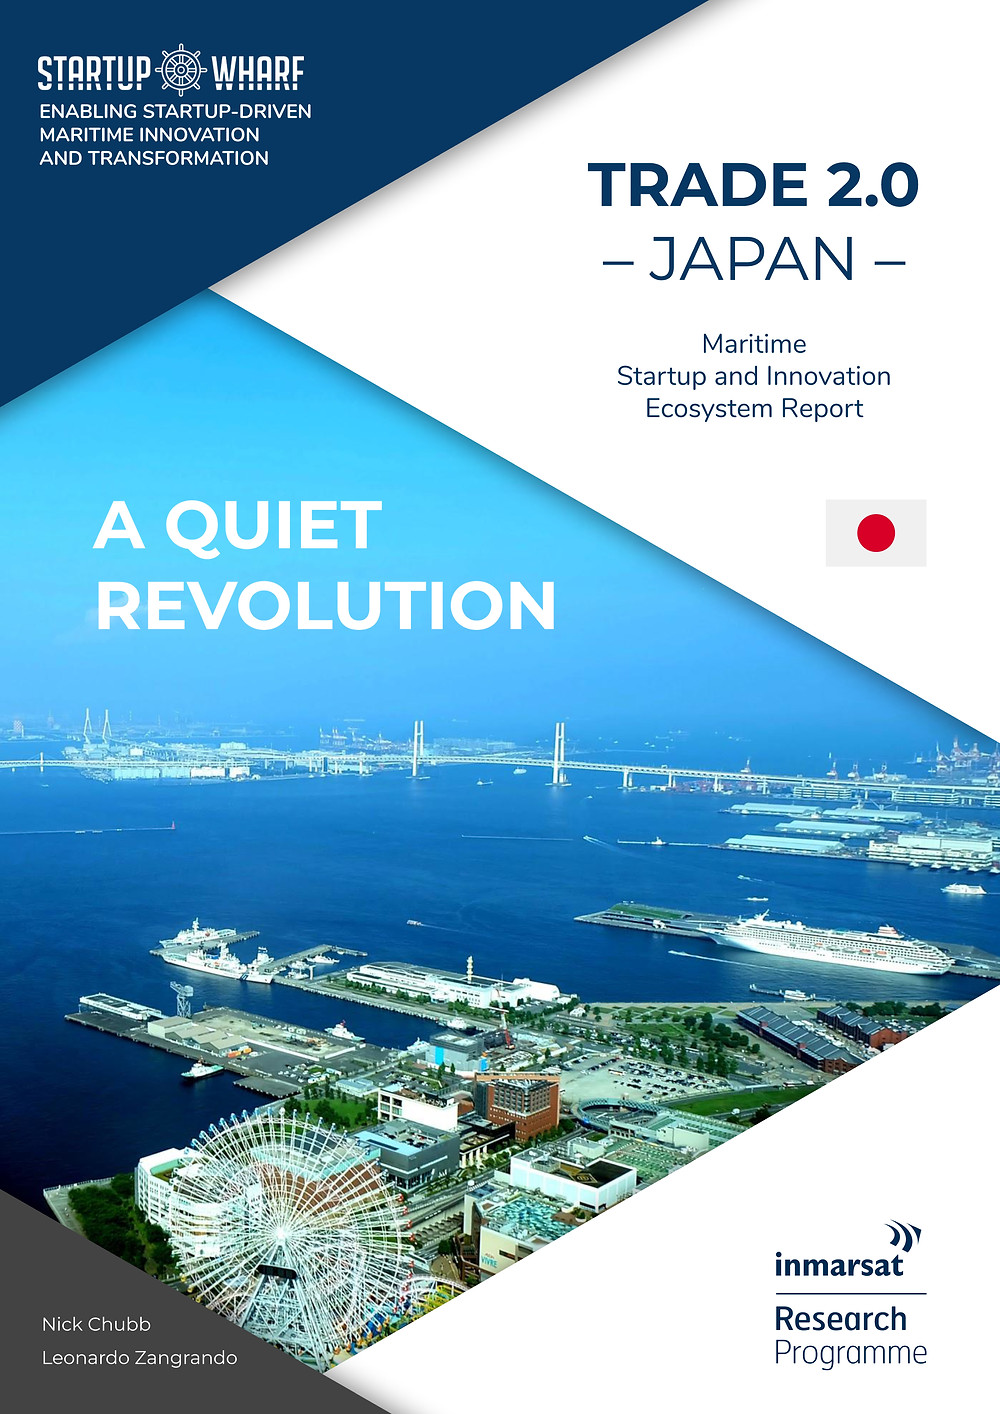 Inmarsat report highlights critical role of partnership in Japan's connected maritime innovation ecosystem